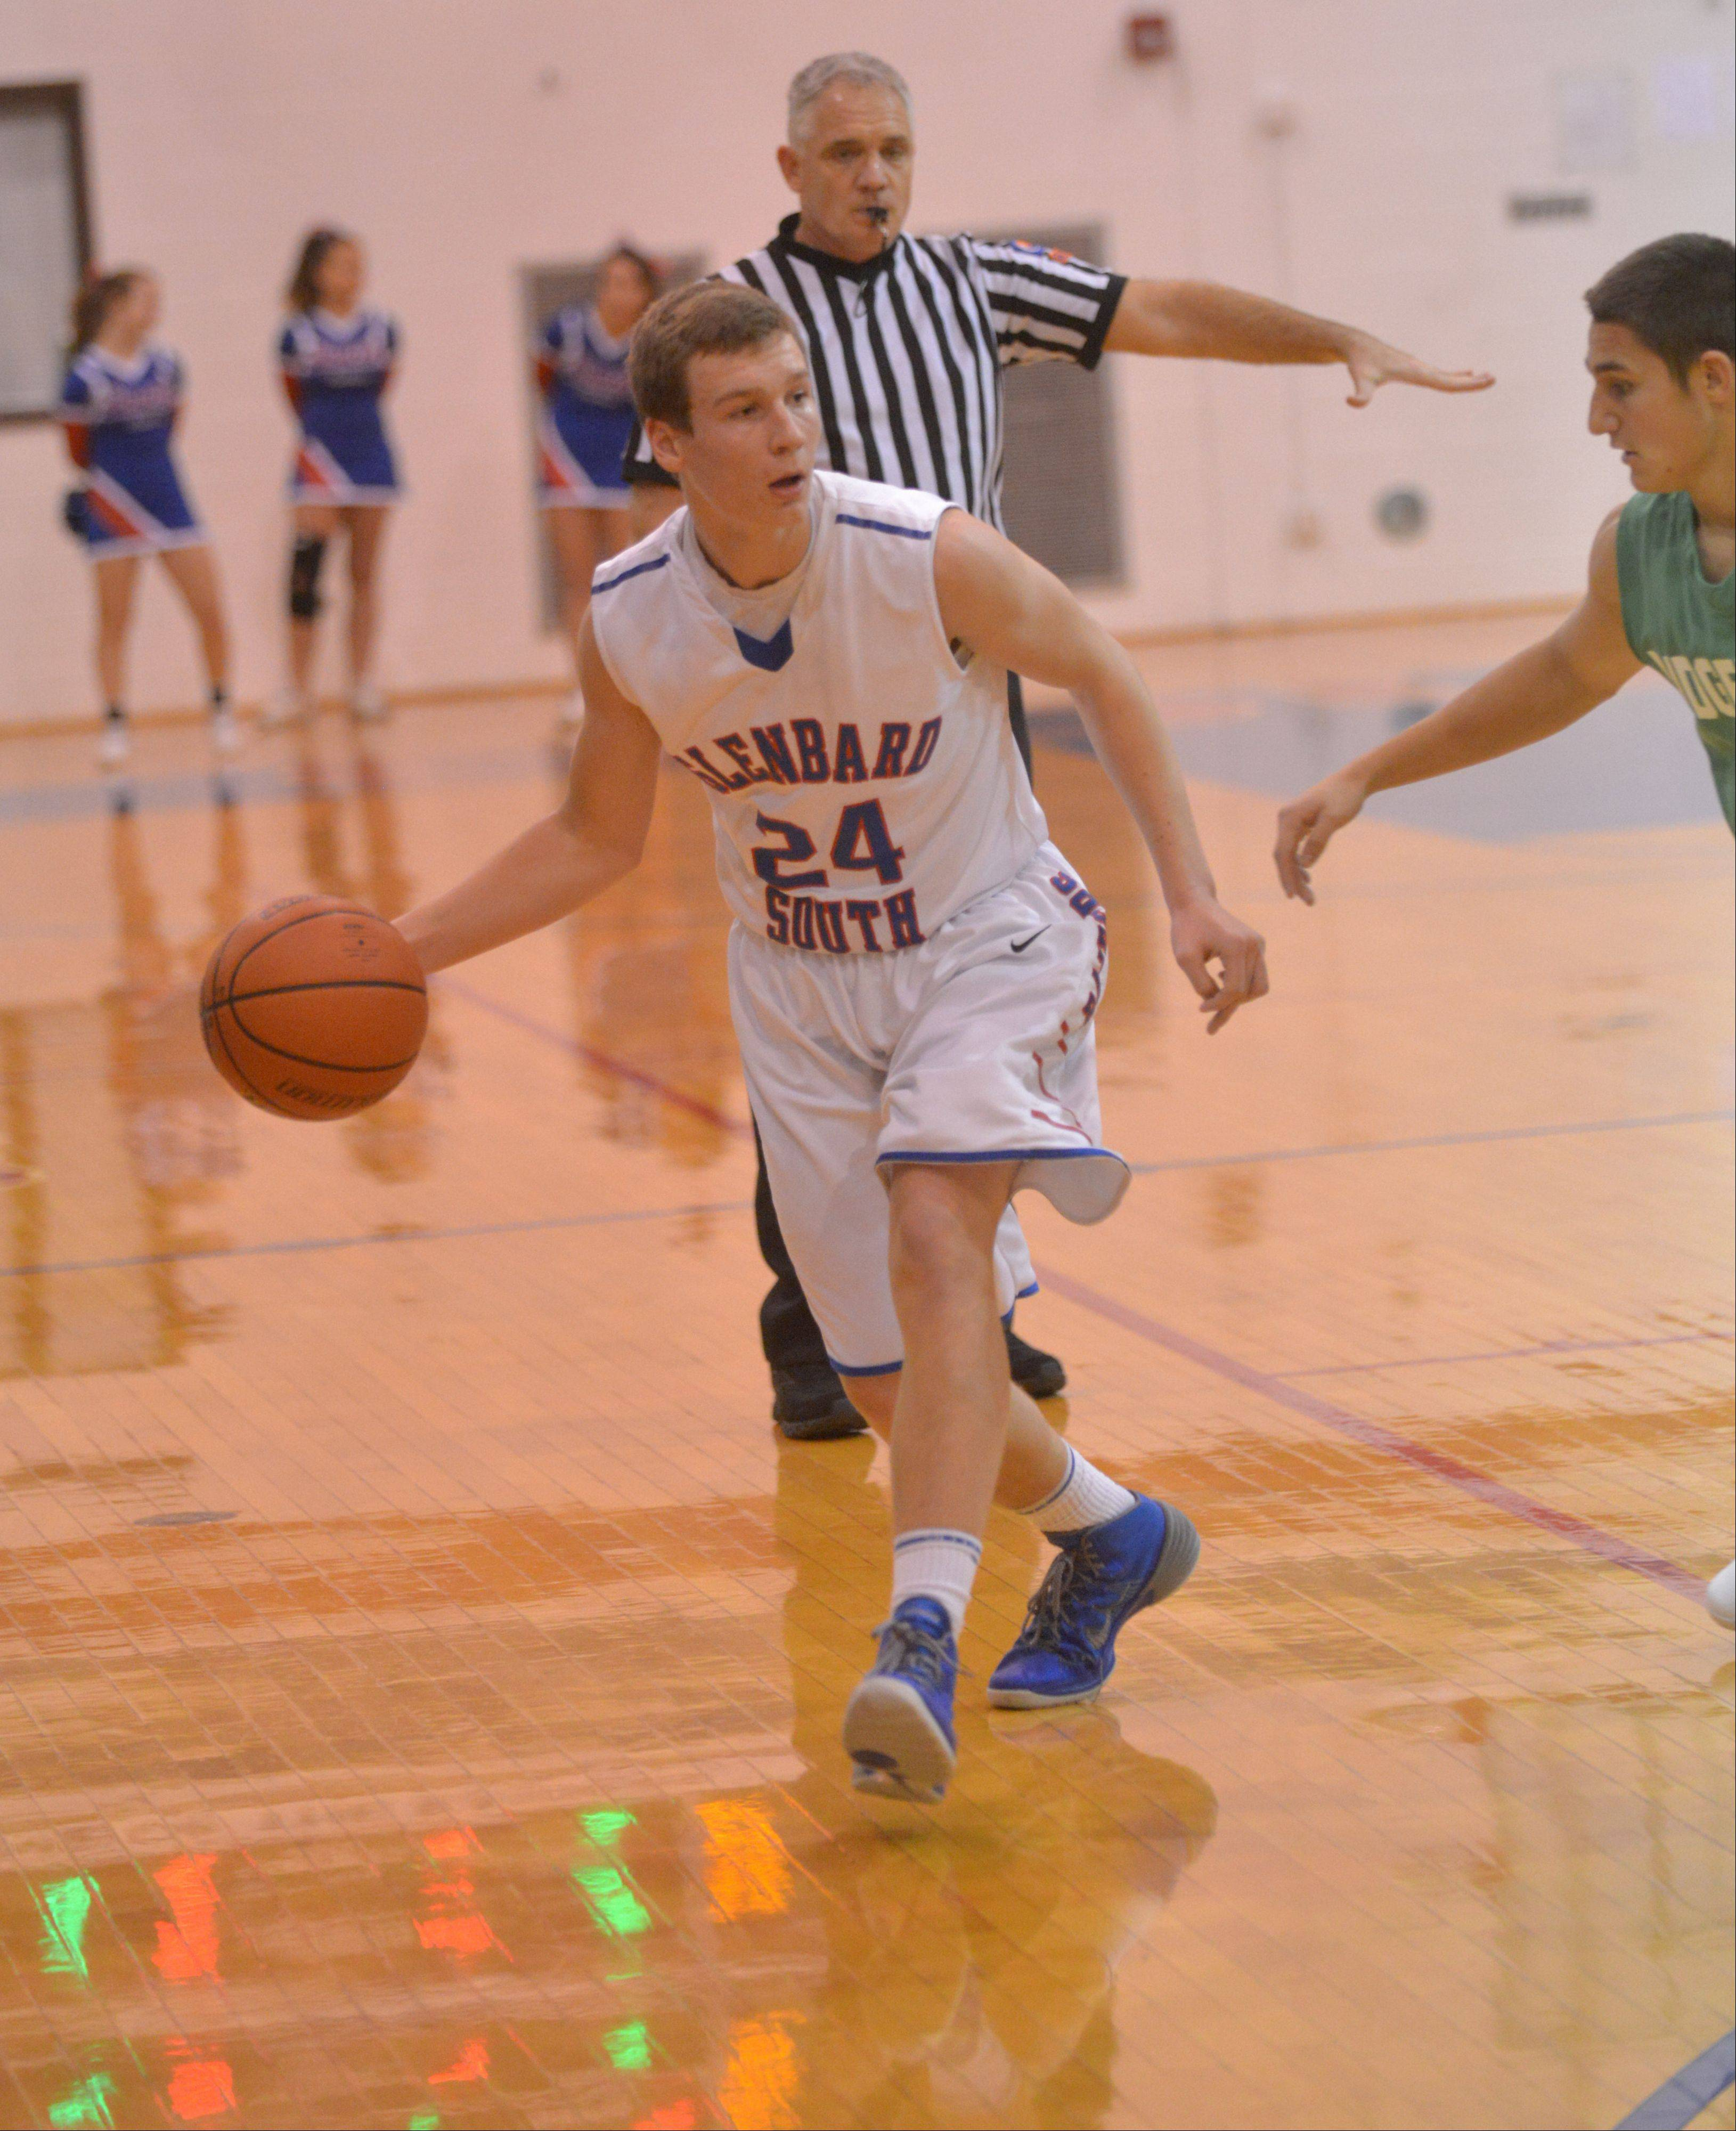 Photos from the Ridgewood at Glenbard South boys basketball game Thursday, Dec. 19.